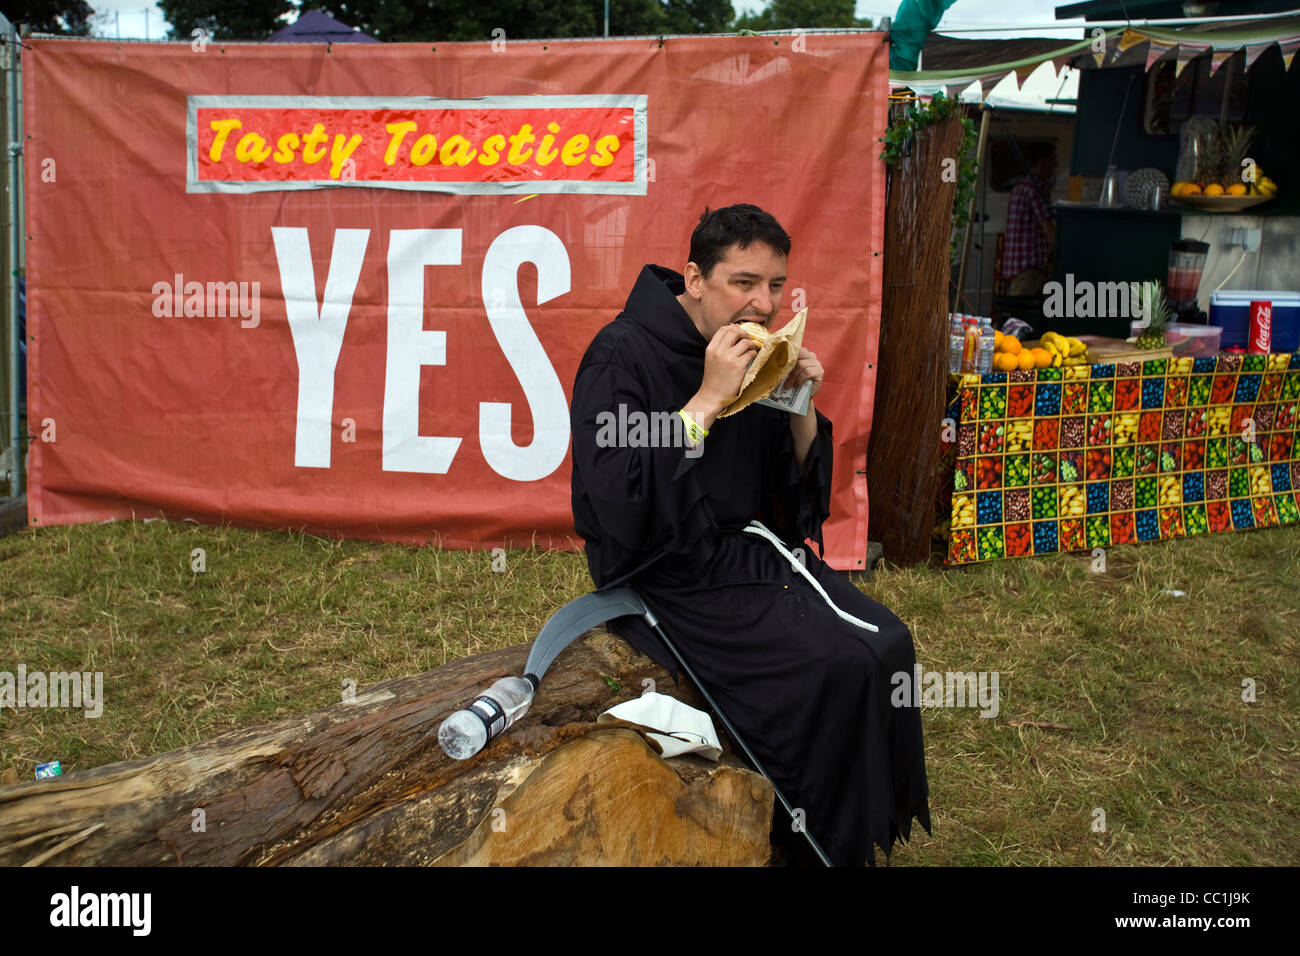 A man dressed as the Grim Reaper eats a sandwich on a log at the Standon Calling Festival in Hertfordshire, UK. - Stock Image